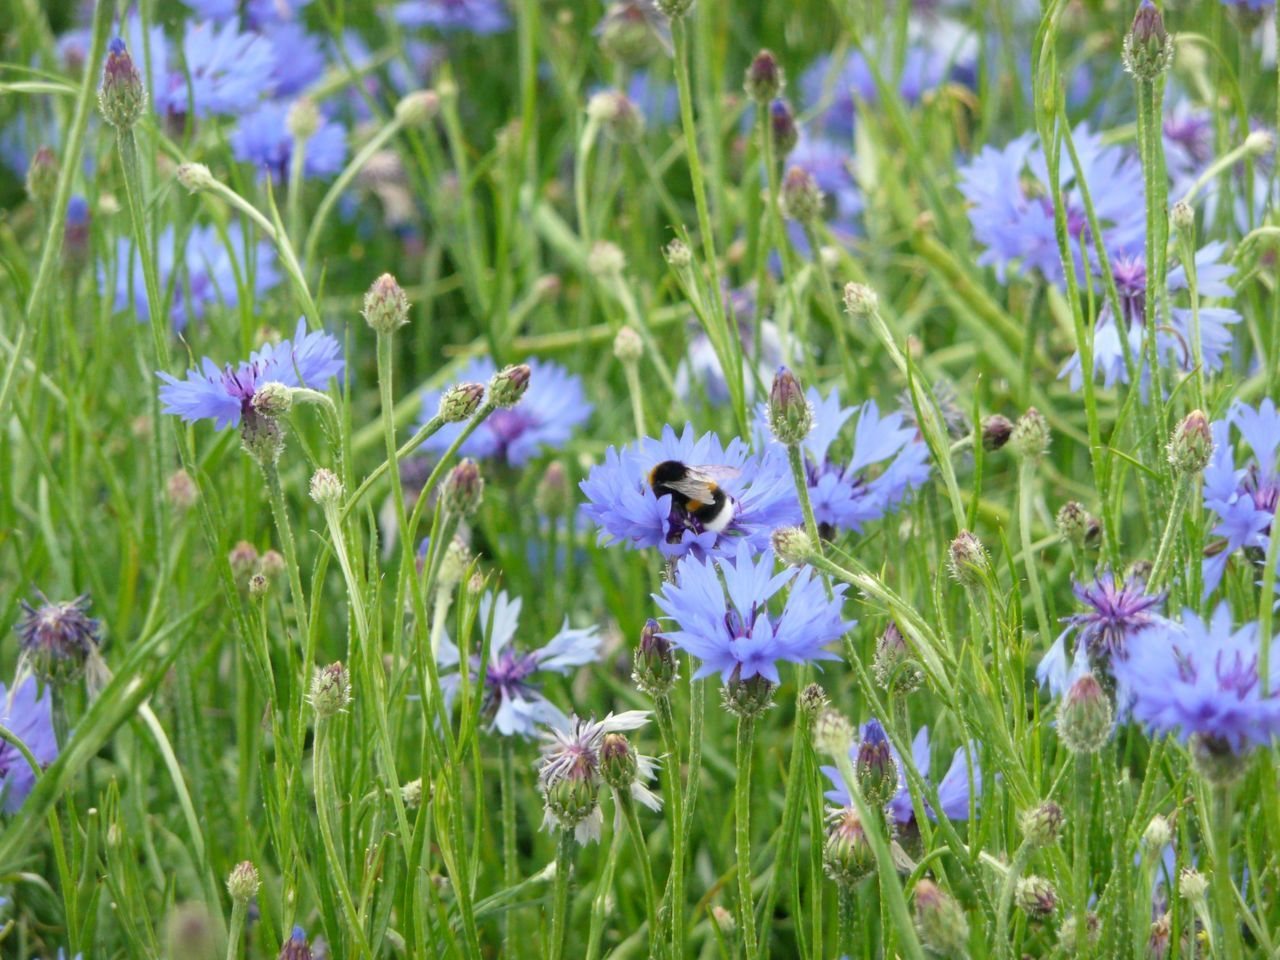 Flower Head Beauty In Nature BlueBottle Pollination Outdoors Purple Bachelor Buttons Plant Garden Cornflower Freshness Animals In The Wild Fragility Petal Blue Day Flower Lavender Summer Meadow Summer Fields Of Green Cornflower Cornfield Grass Summer Fields Crocus Field